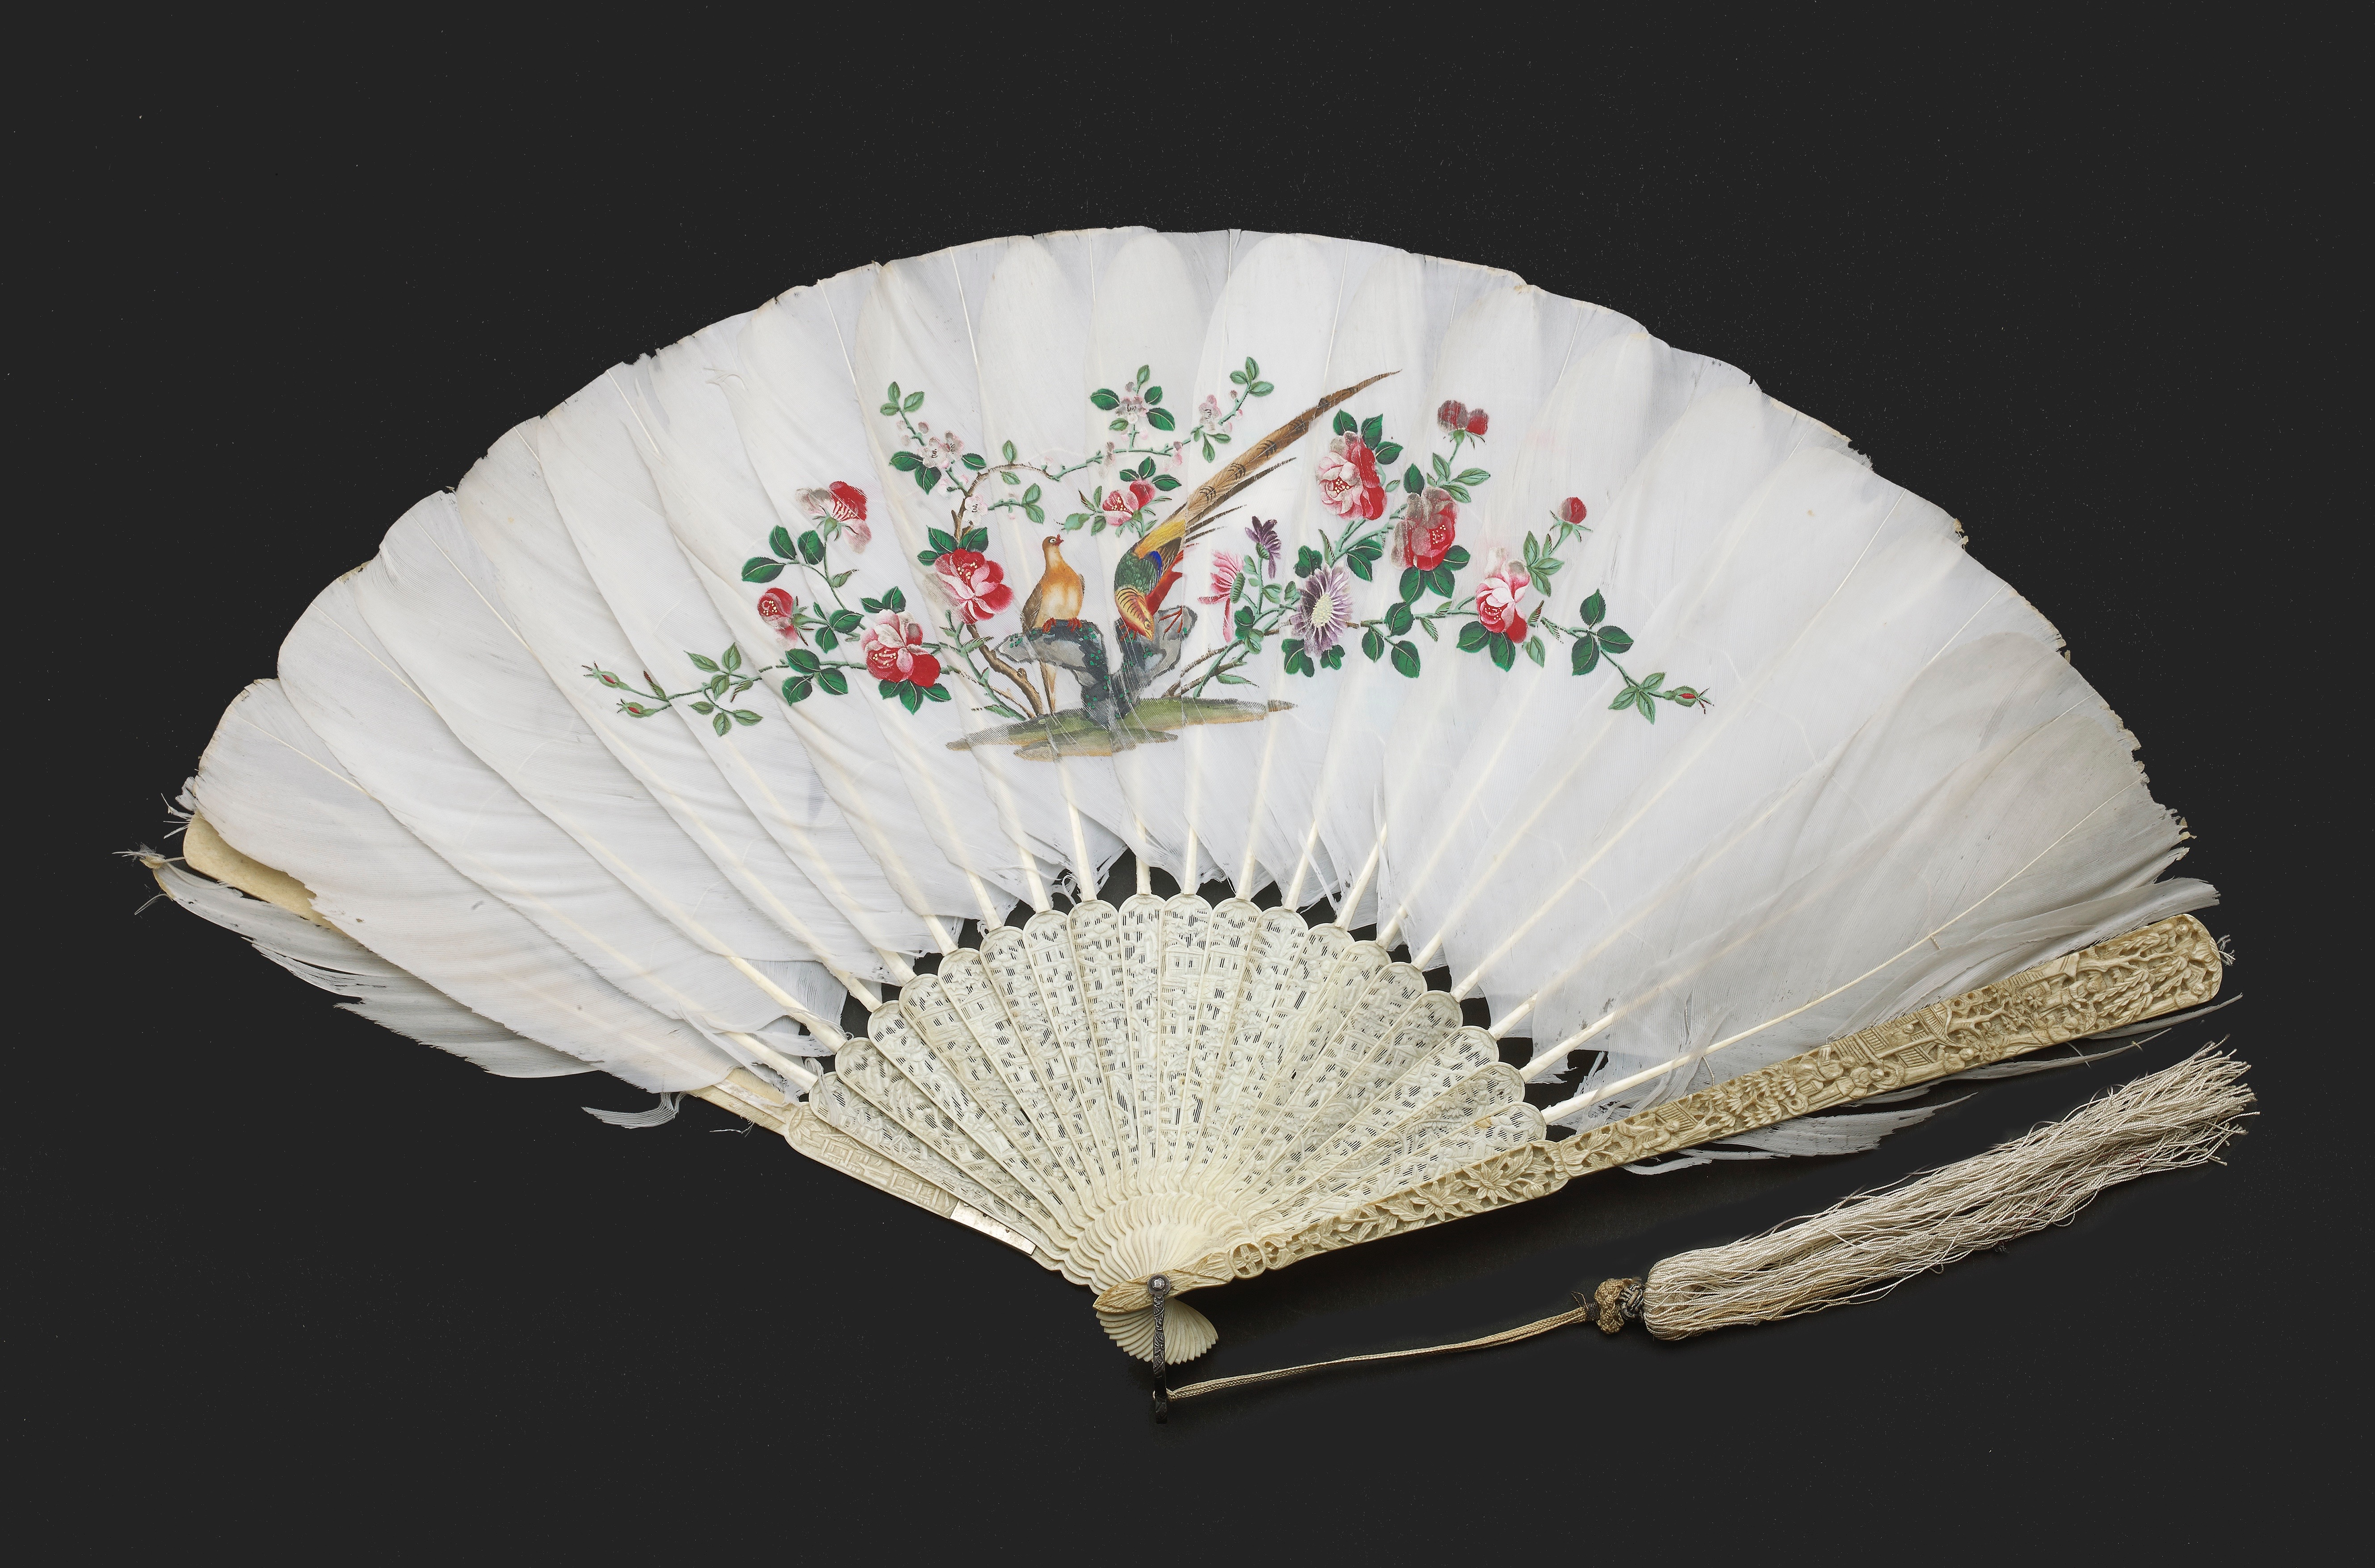 Lot 10 - A CHINESE EXPORT CARVED IVORY AND FEATHER FAN, QING DYNASTY, DAOGUANG PERIOD, CIRCA 1820-1830